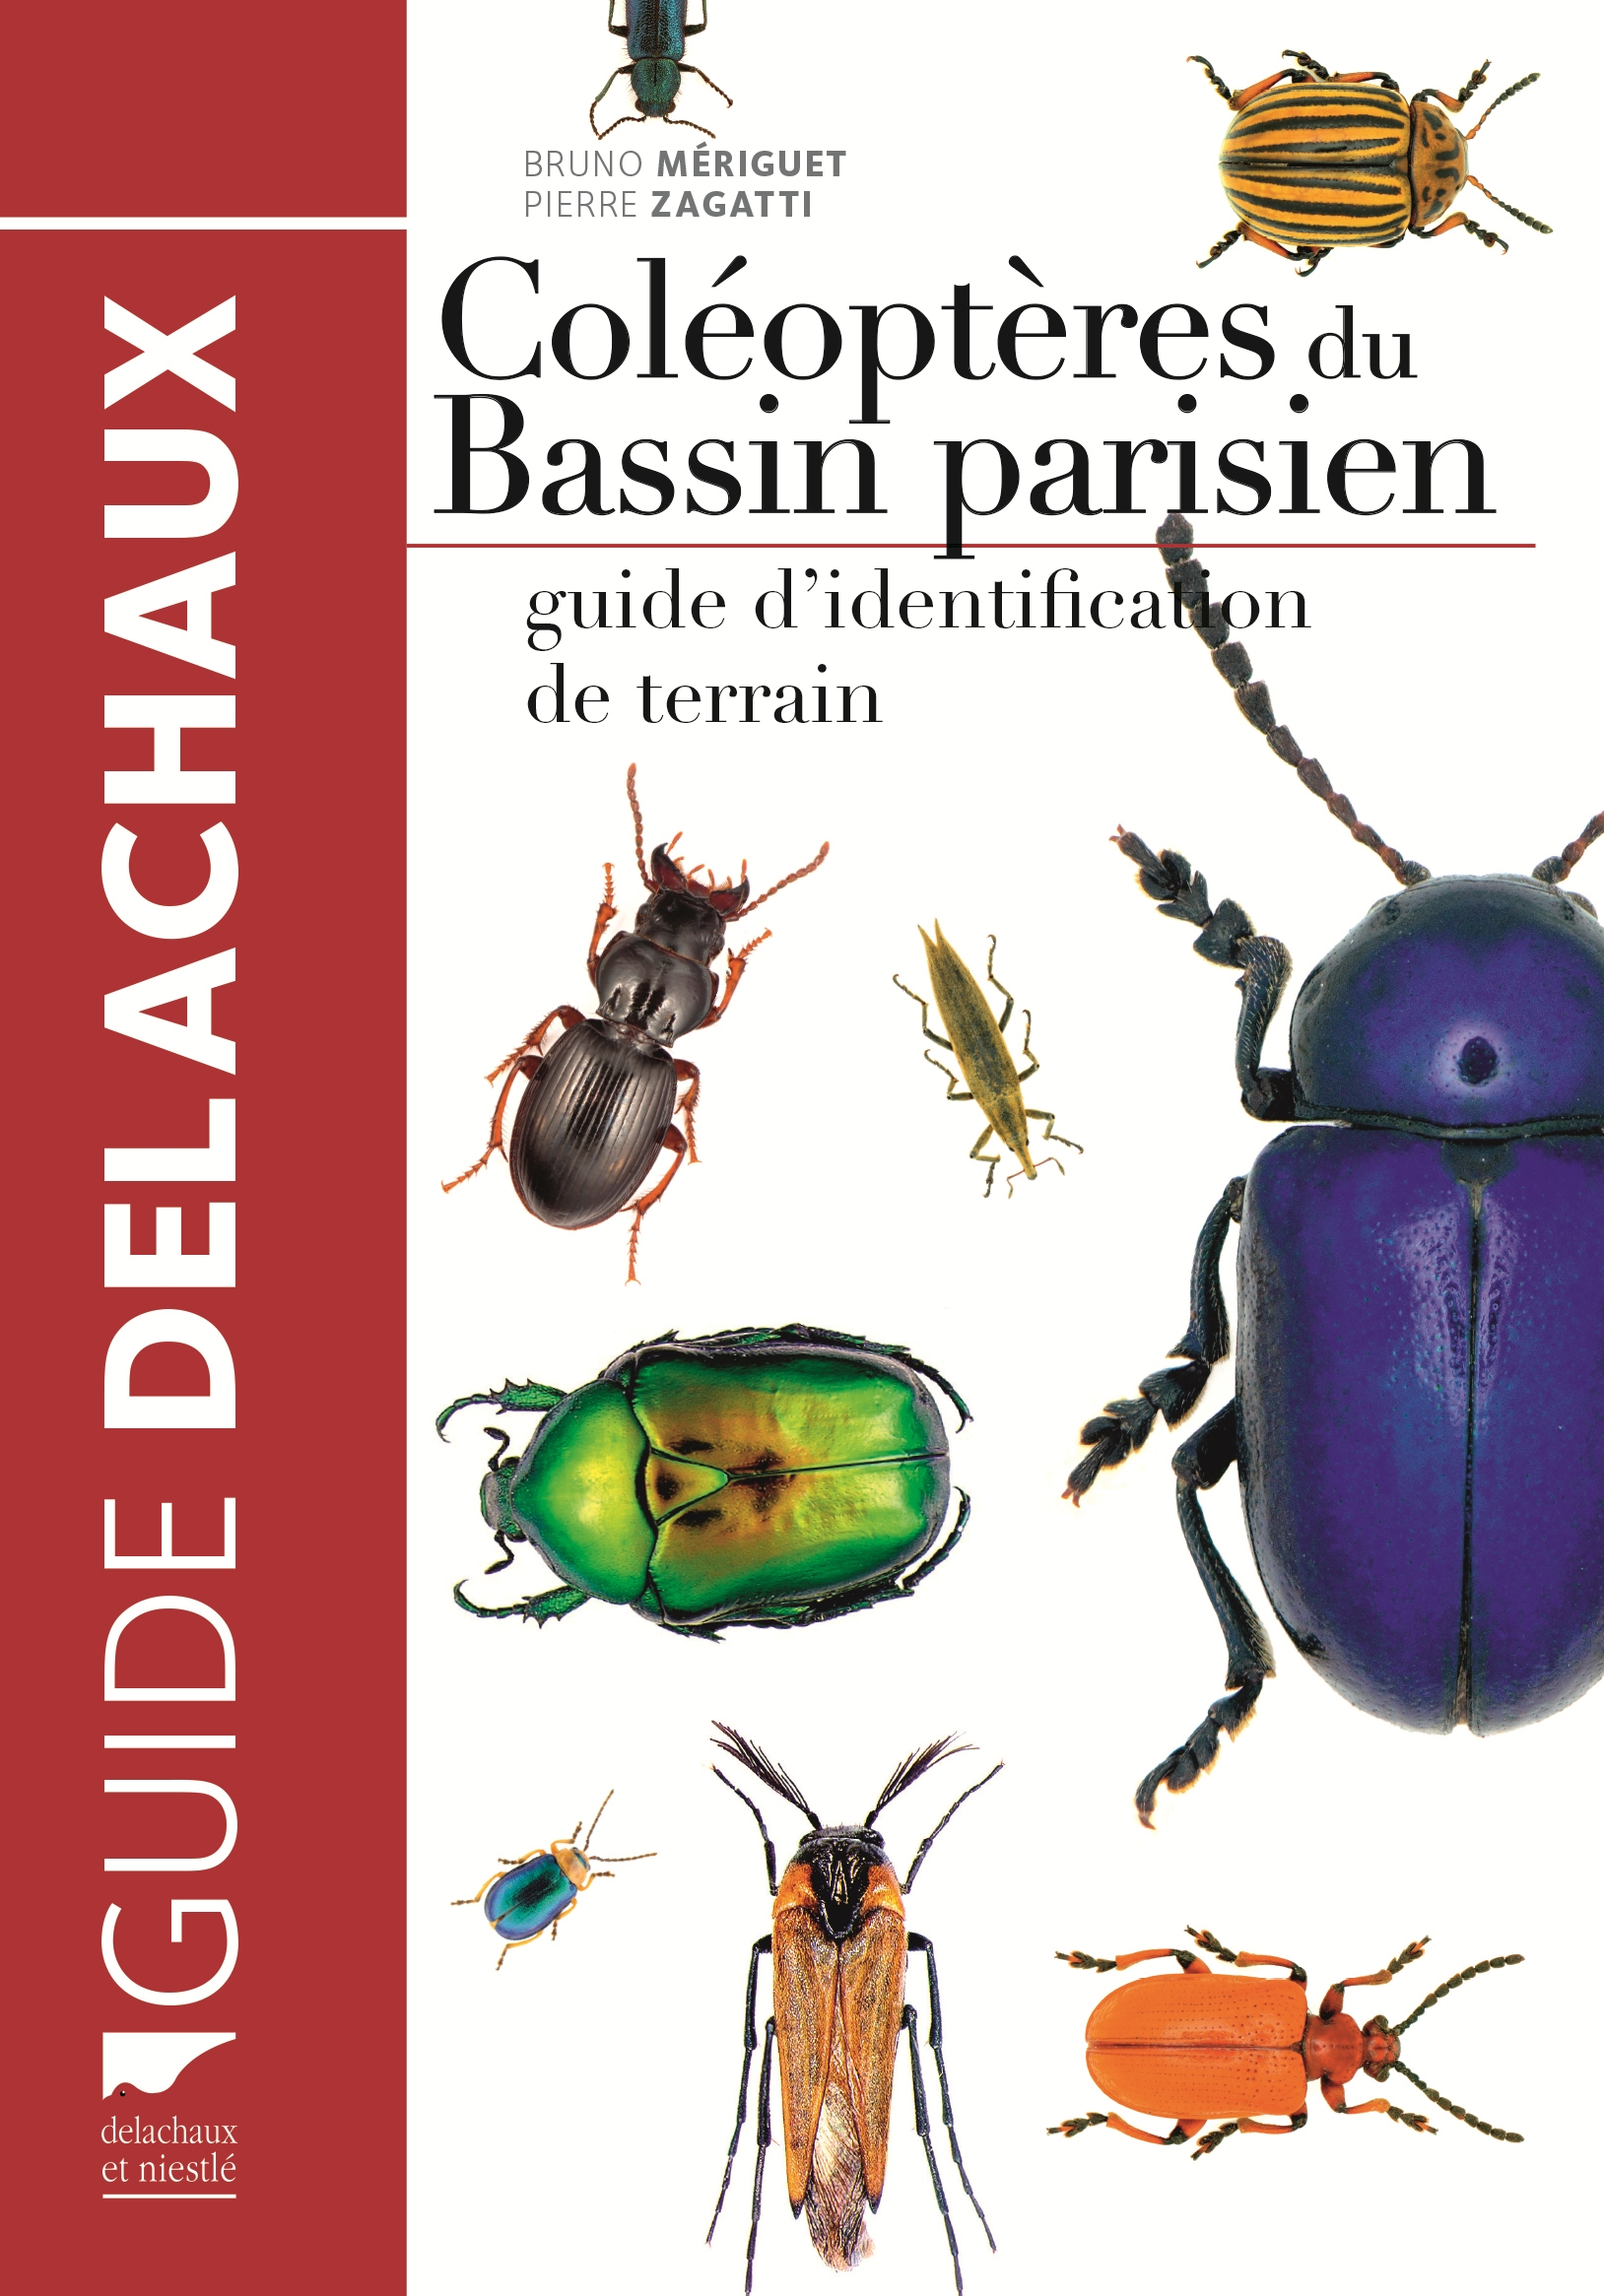 Cover of the book : Beetles of the Paris Basin (Source : B. Meriguet & P. Zagatti, Delachaux&Niestlé-2016)